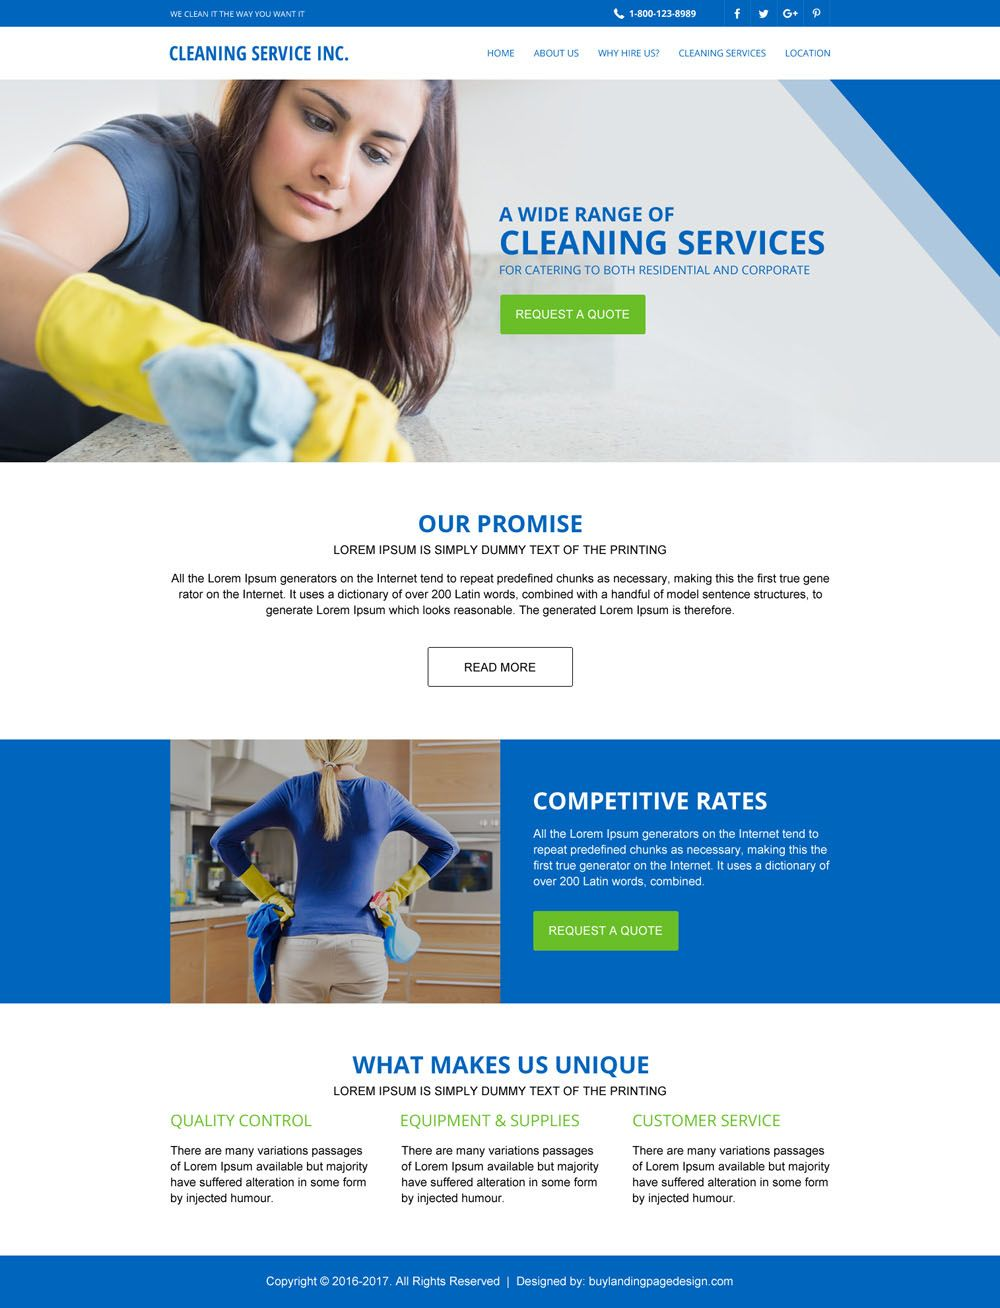 Cleaning Services Responsive Website Template Design  Cleaning